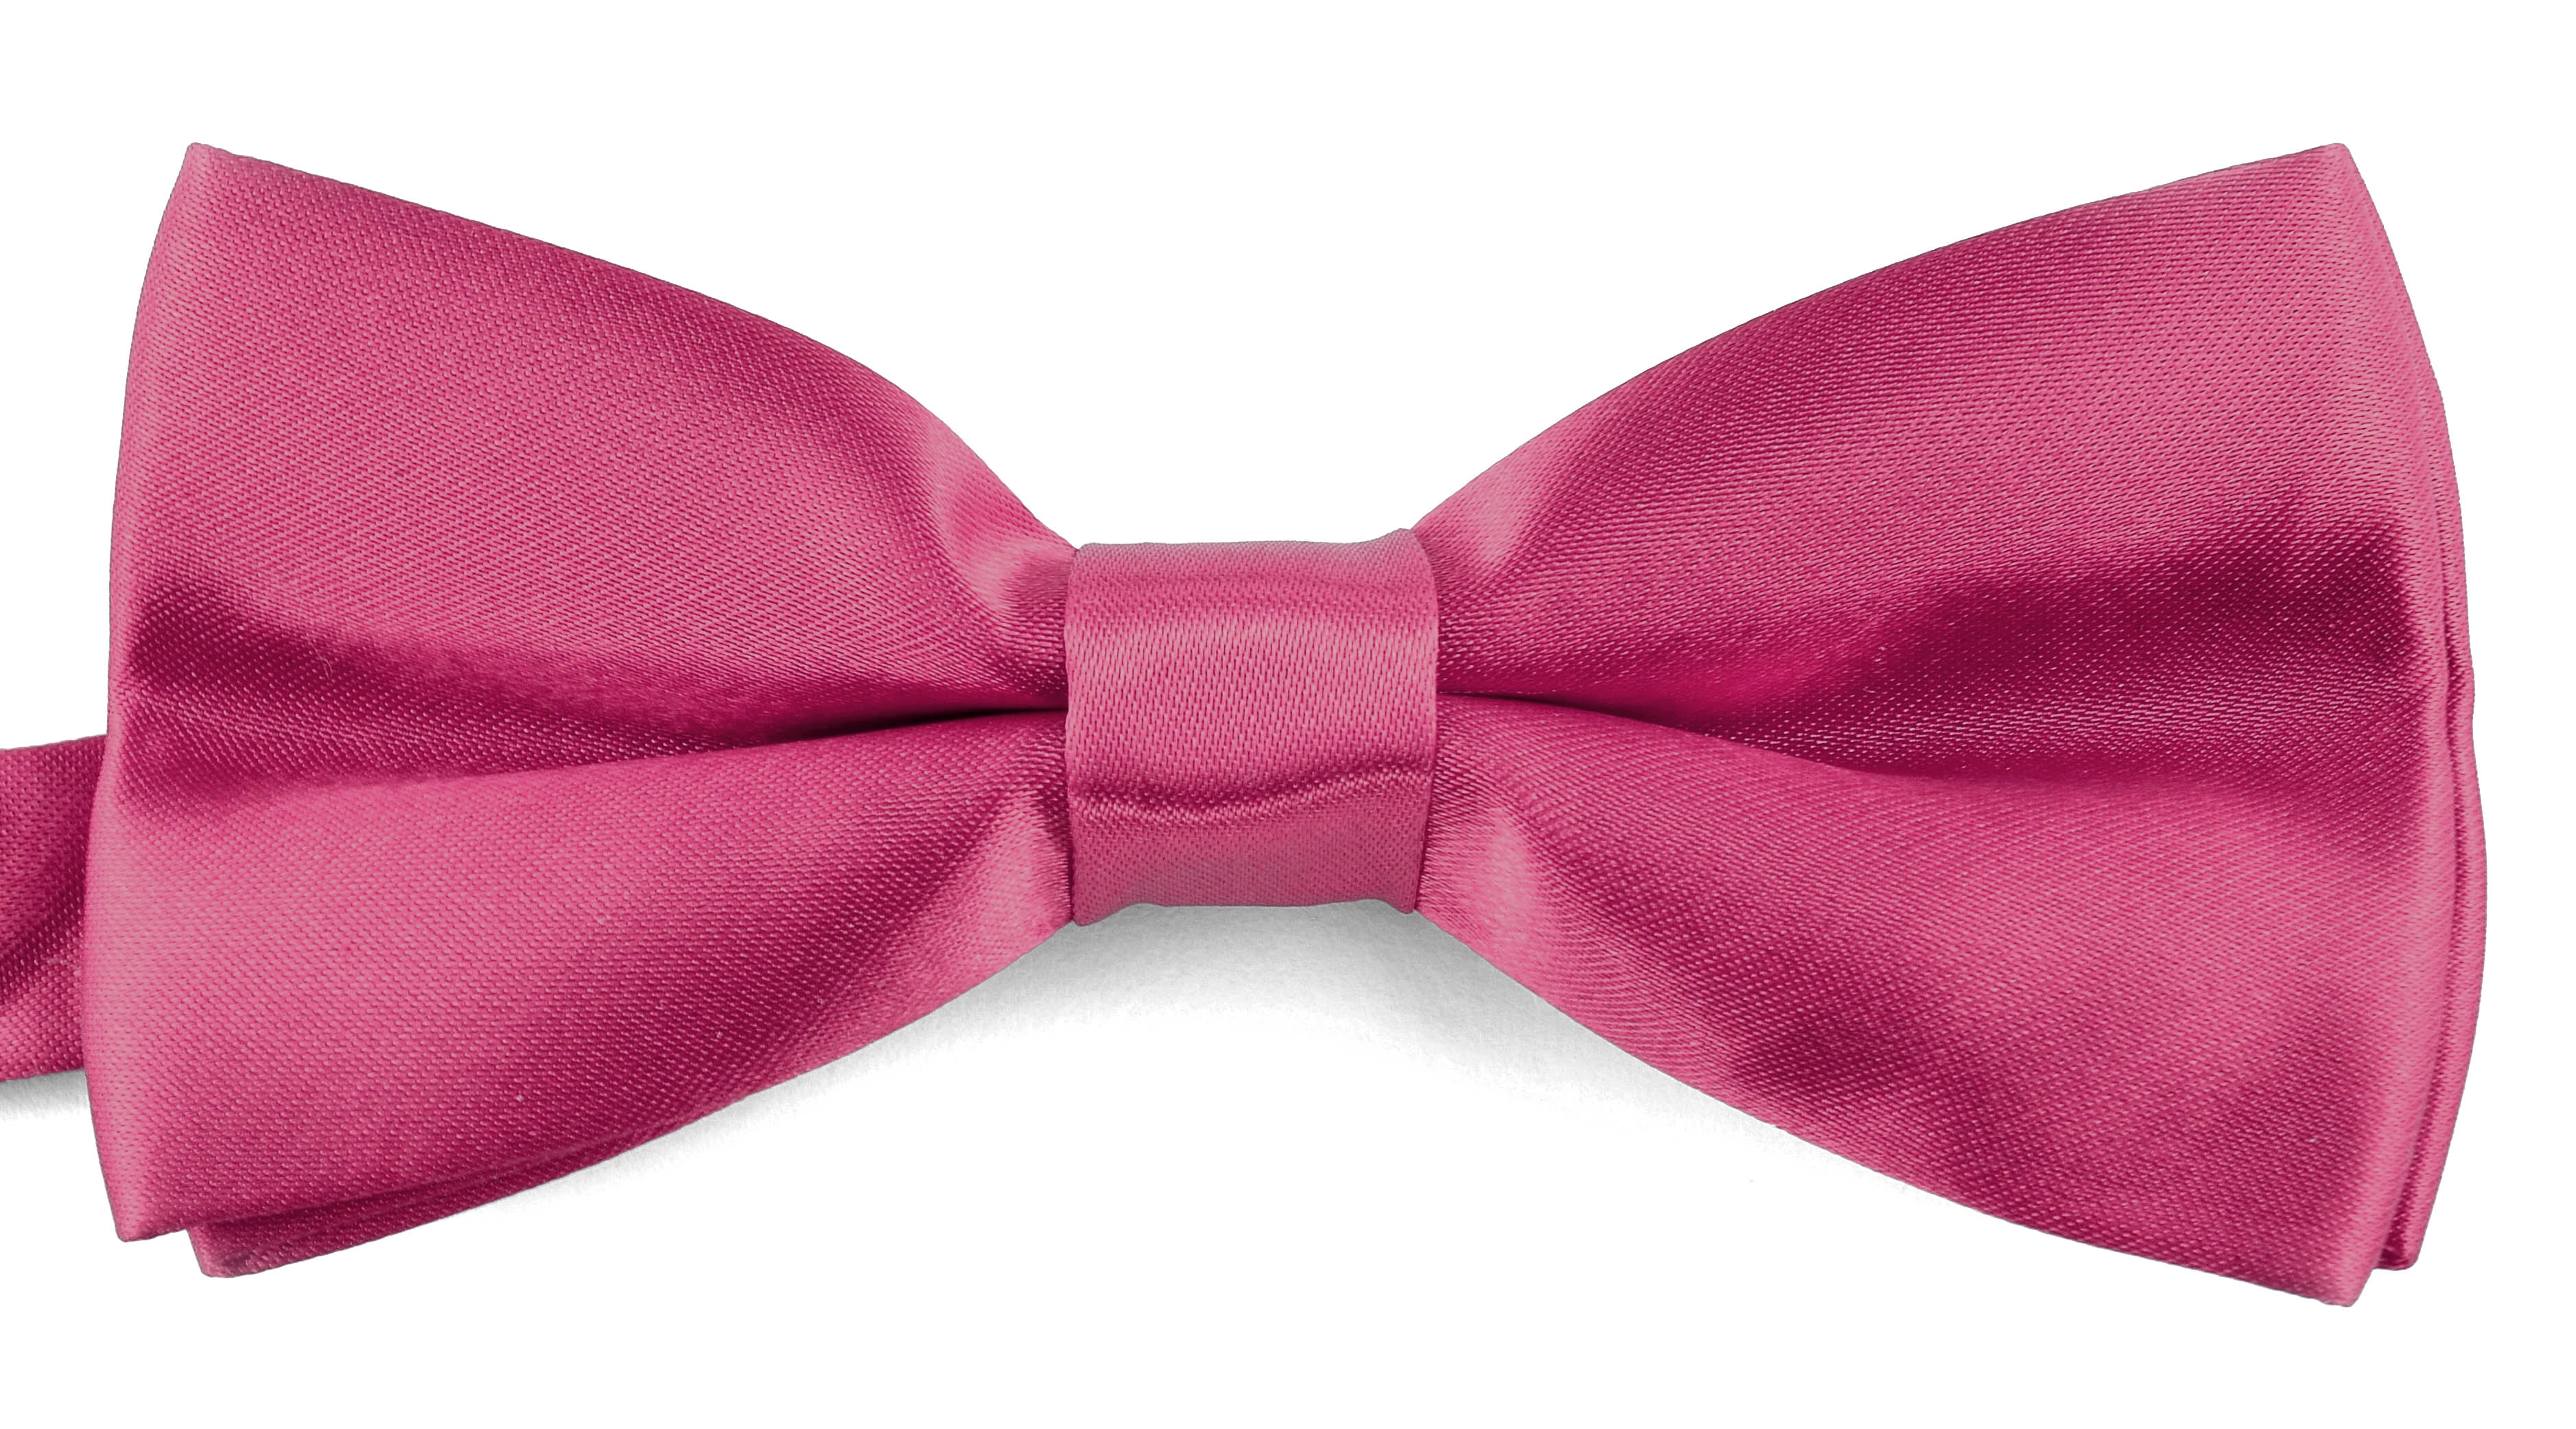 Bow Ties For Men Banded BowTie Formal Tuxedo Bowties PreTied Bow Ties With Gift Box By Moda Di Raza - Rose Pink